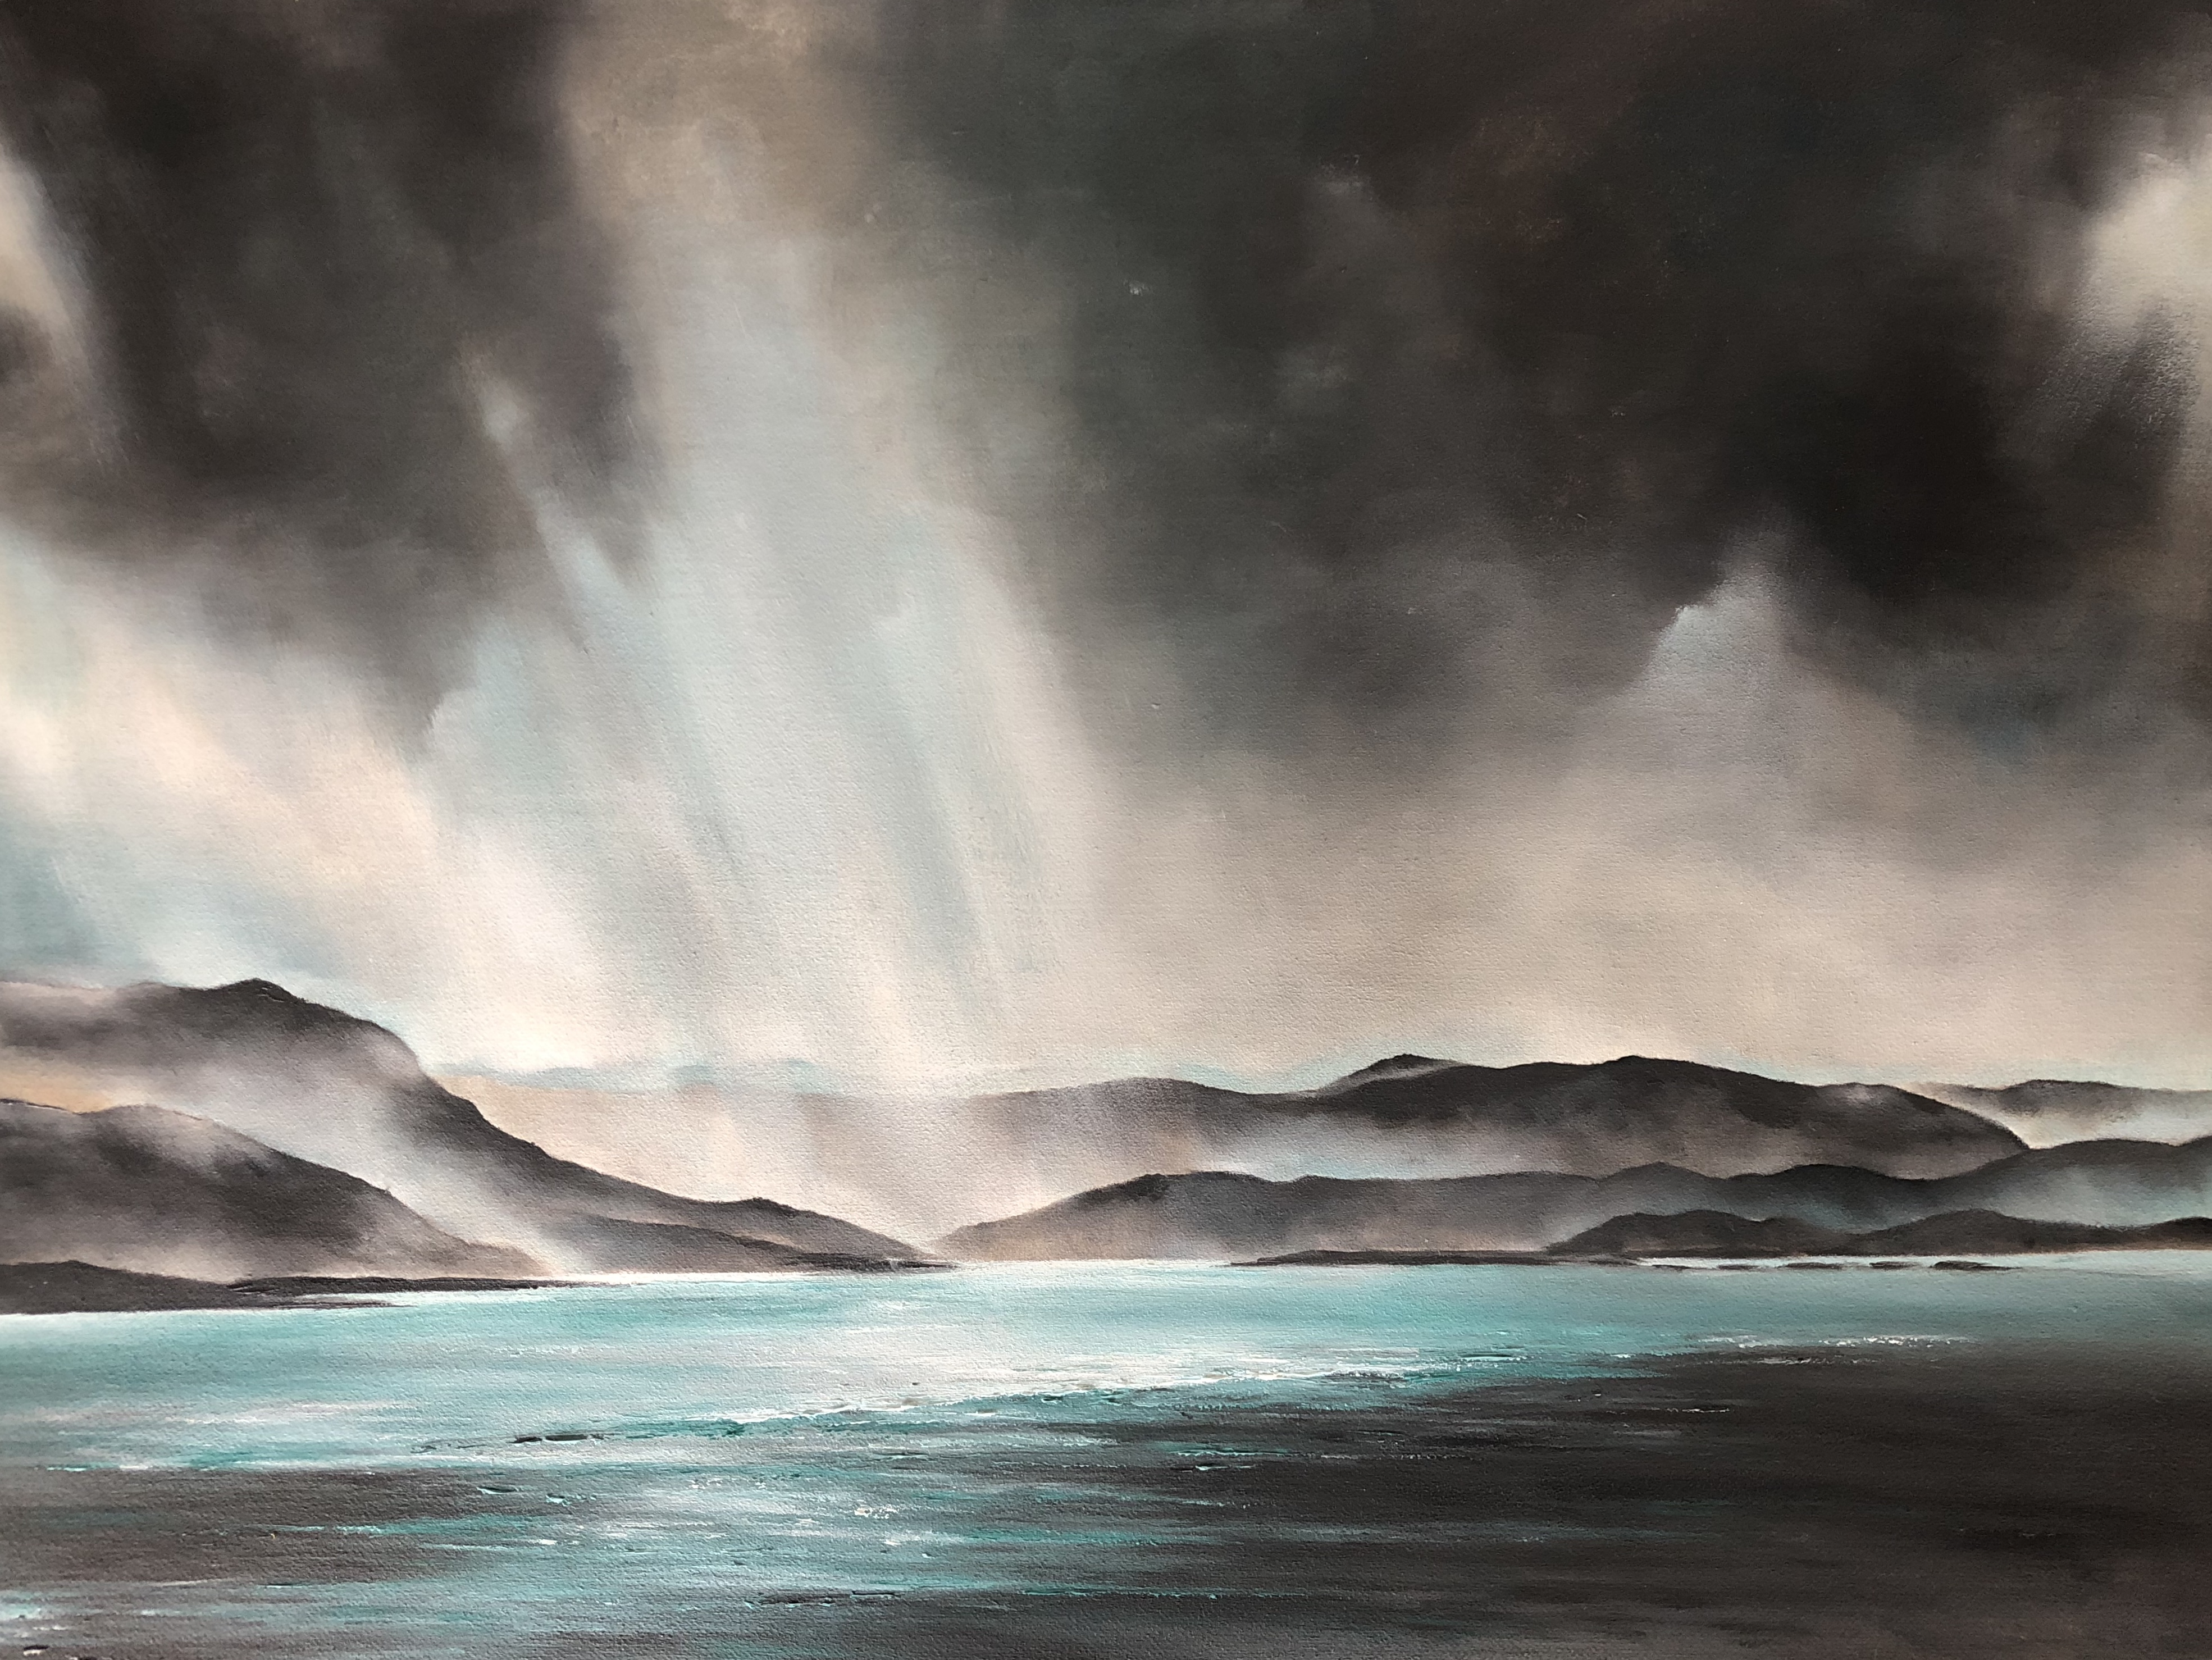 Shifting Light - Loch Torridon